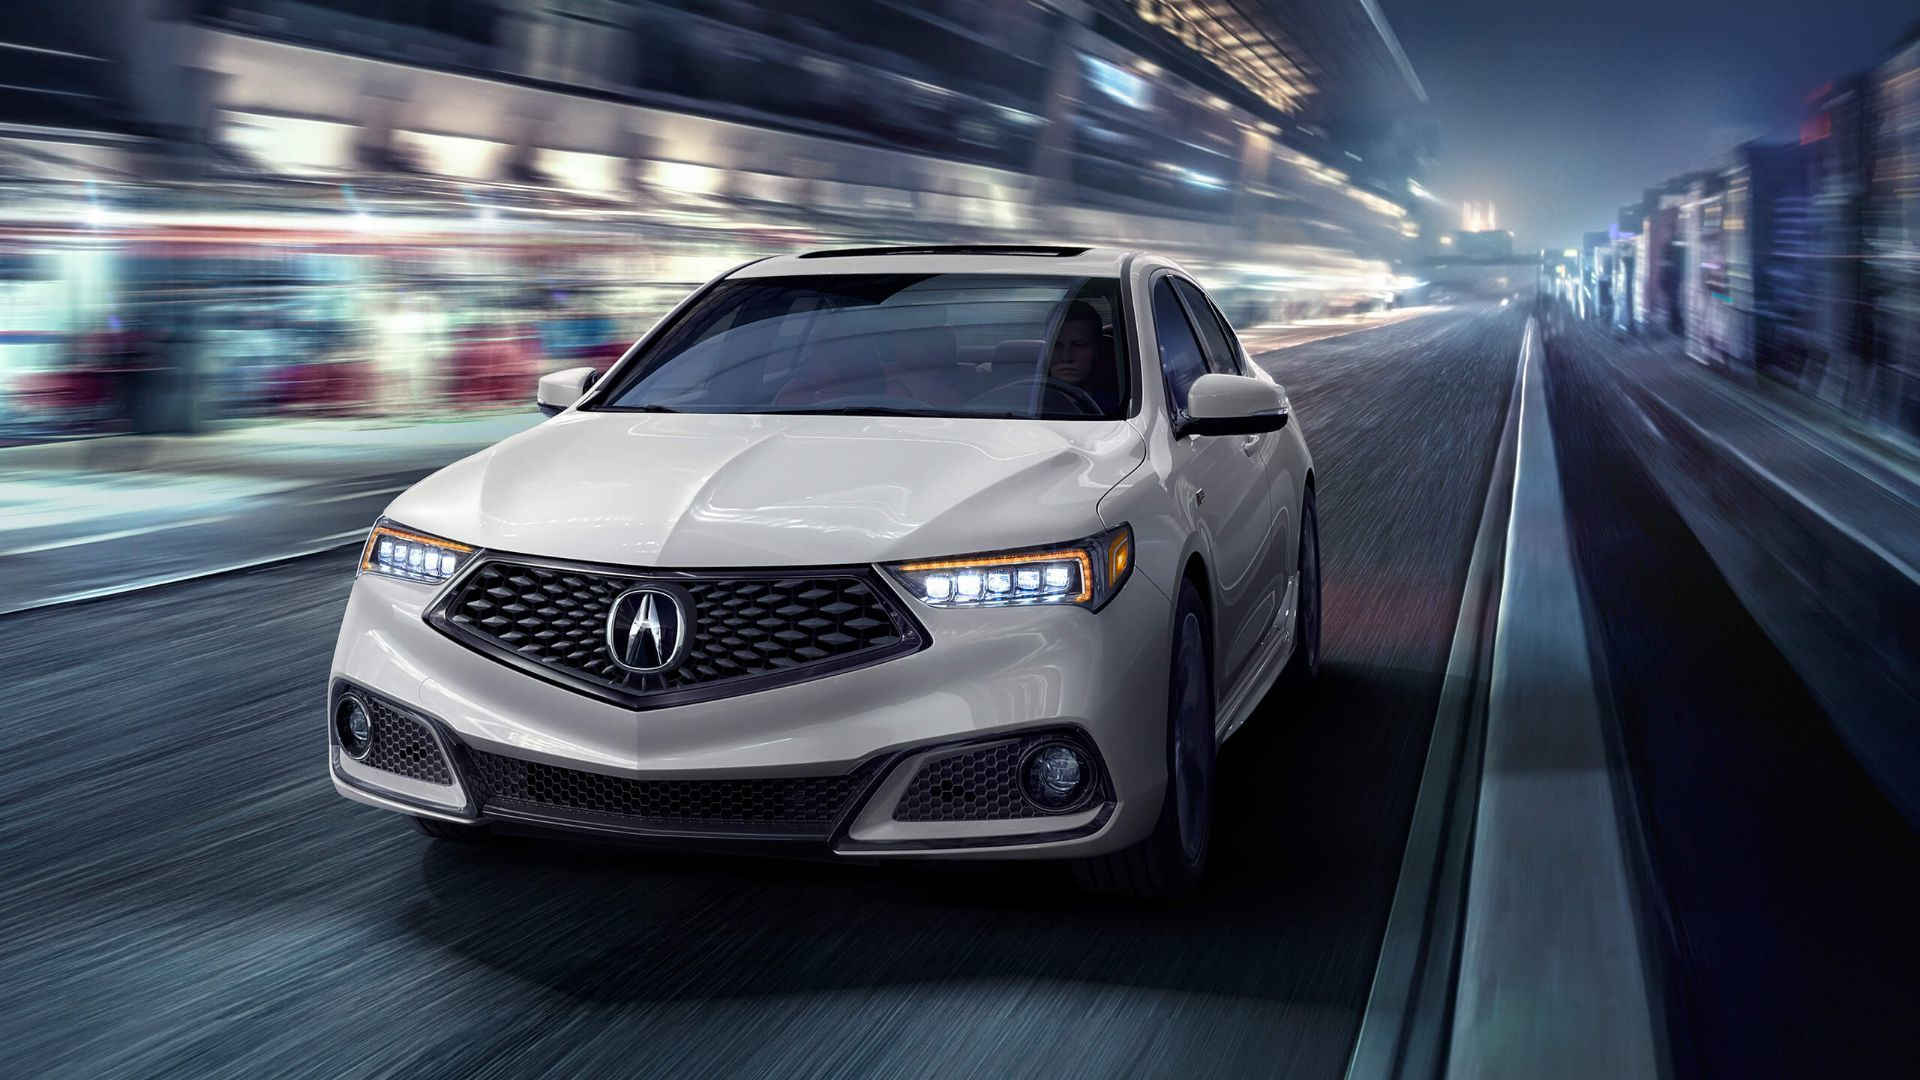 The 2020 Acura TLX: Beyond The Sport Sedan